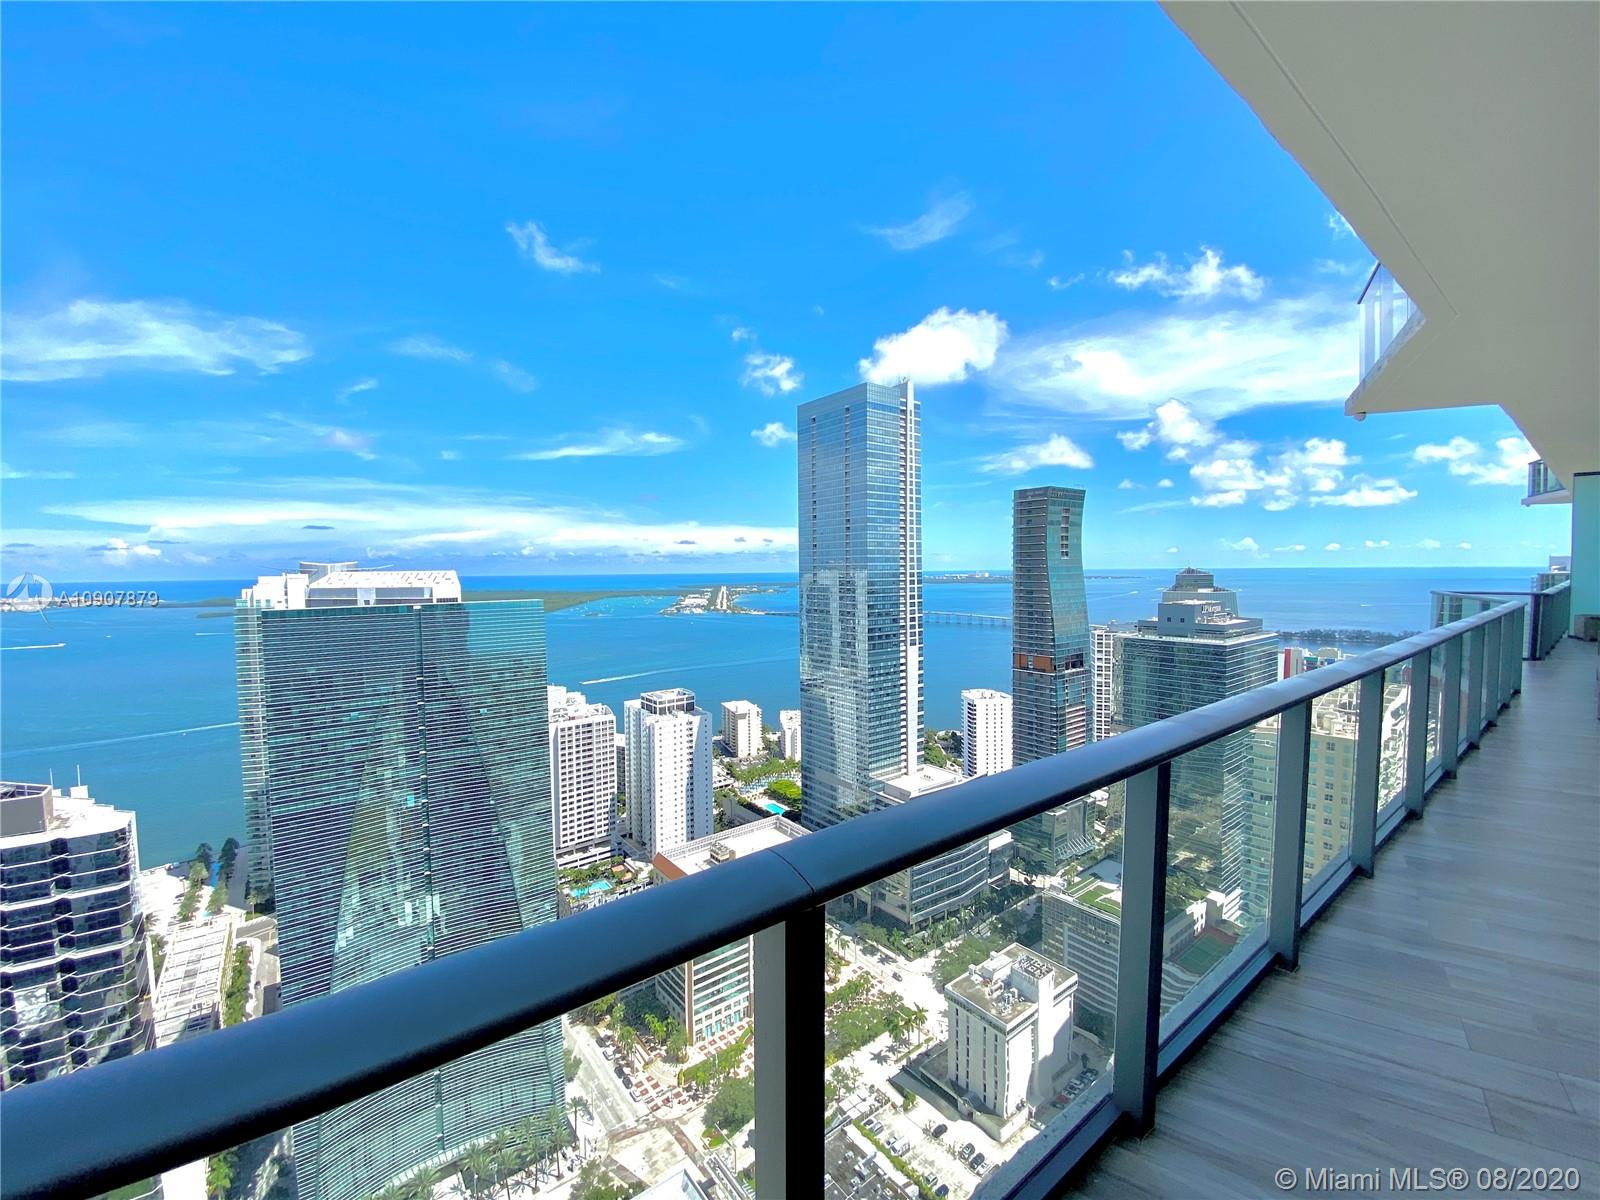 LUXURY IN THE SKY! Spectacular designer appointed 3 Bed + Den Penthouse in luxurious SLS Brickell with over $350K in upgrades and designer furniture from Roche Bobois, Missoni and more. Best Line at SLS, offered fully furnished. PH completely upgraded w/luxury end-finishes. Top-of-the-line Bosch and Subzero appliances, 10-foot ceiling, sleek wood like porcelain floors, Italian doors and Closets. Floor-to-ceiling glass windows open to large balcony w/panoramic views of ocean & Miami skyline. Electric shades throughout. Master Bath w/tub & glass enclosed shower. Amenities include fitness center, rooftop pool, full-service spa, pool terrace w/200 foot-long pool, cabanas, full-service concierge, Kids room, party room, and top restaurants by Michael Schwartz and Jose Andres.